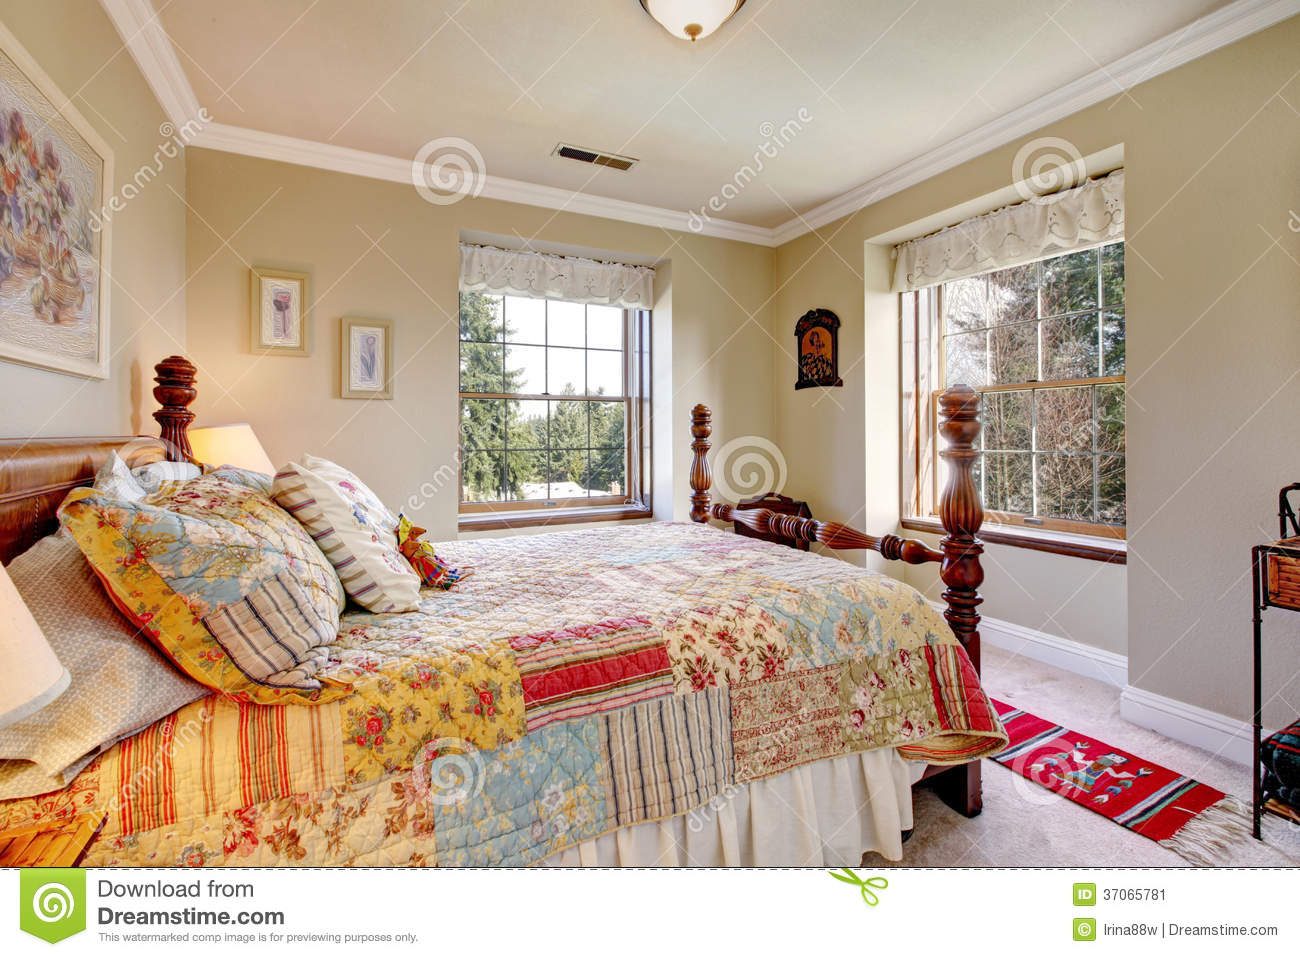 Warm Colors Bedroom With An Old Fashioned Bed Stock Image Image Of